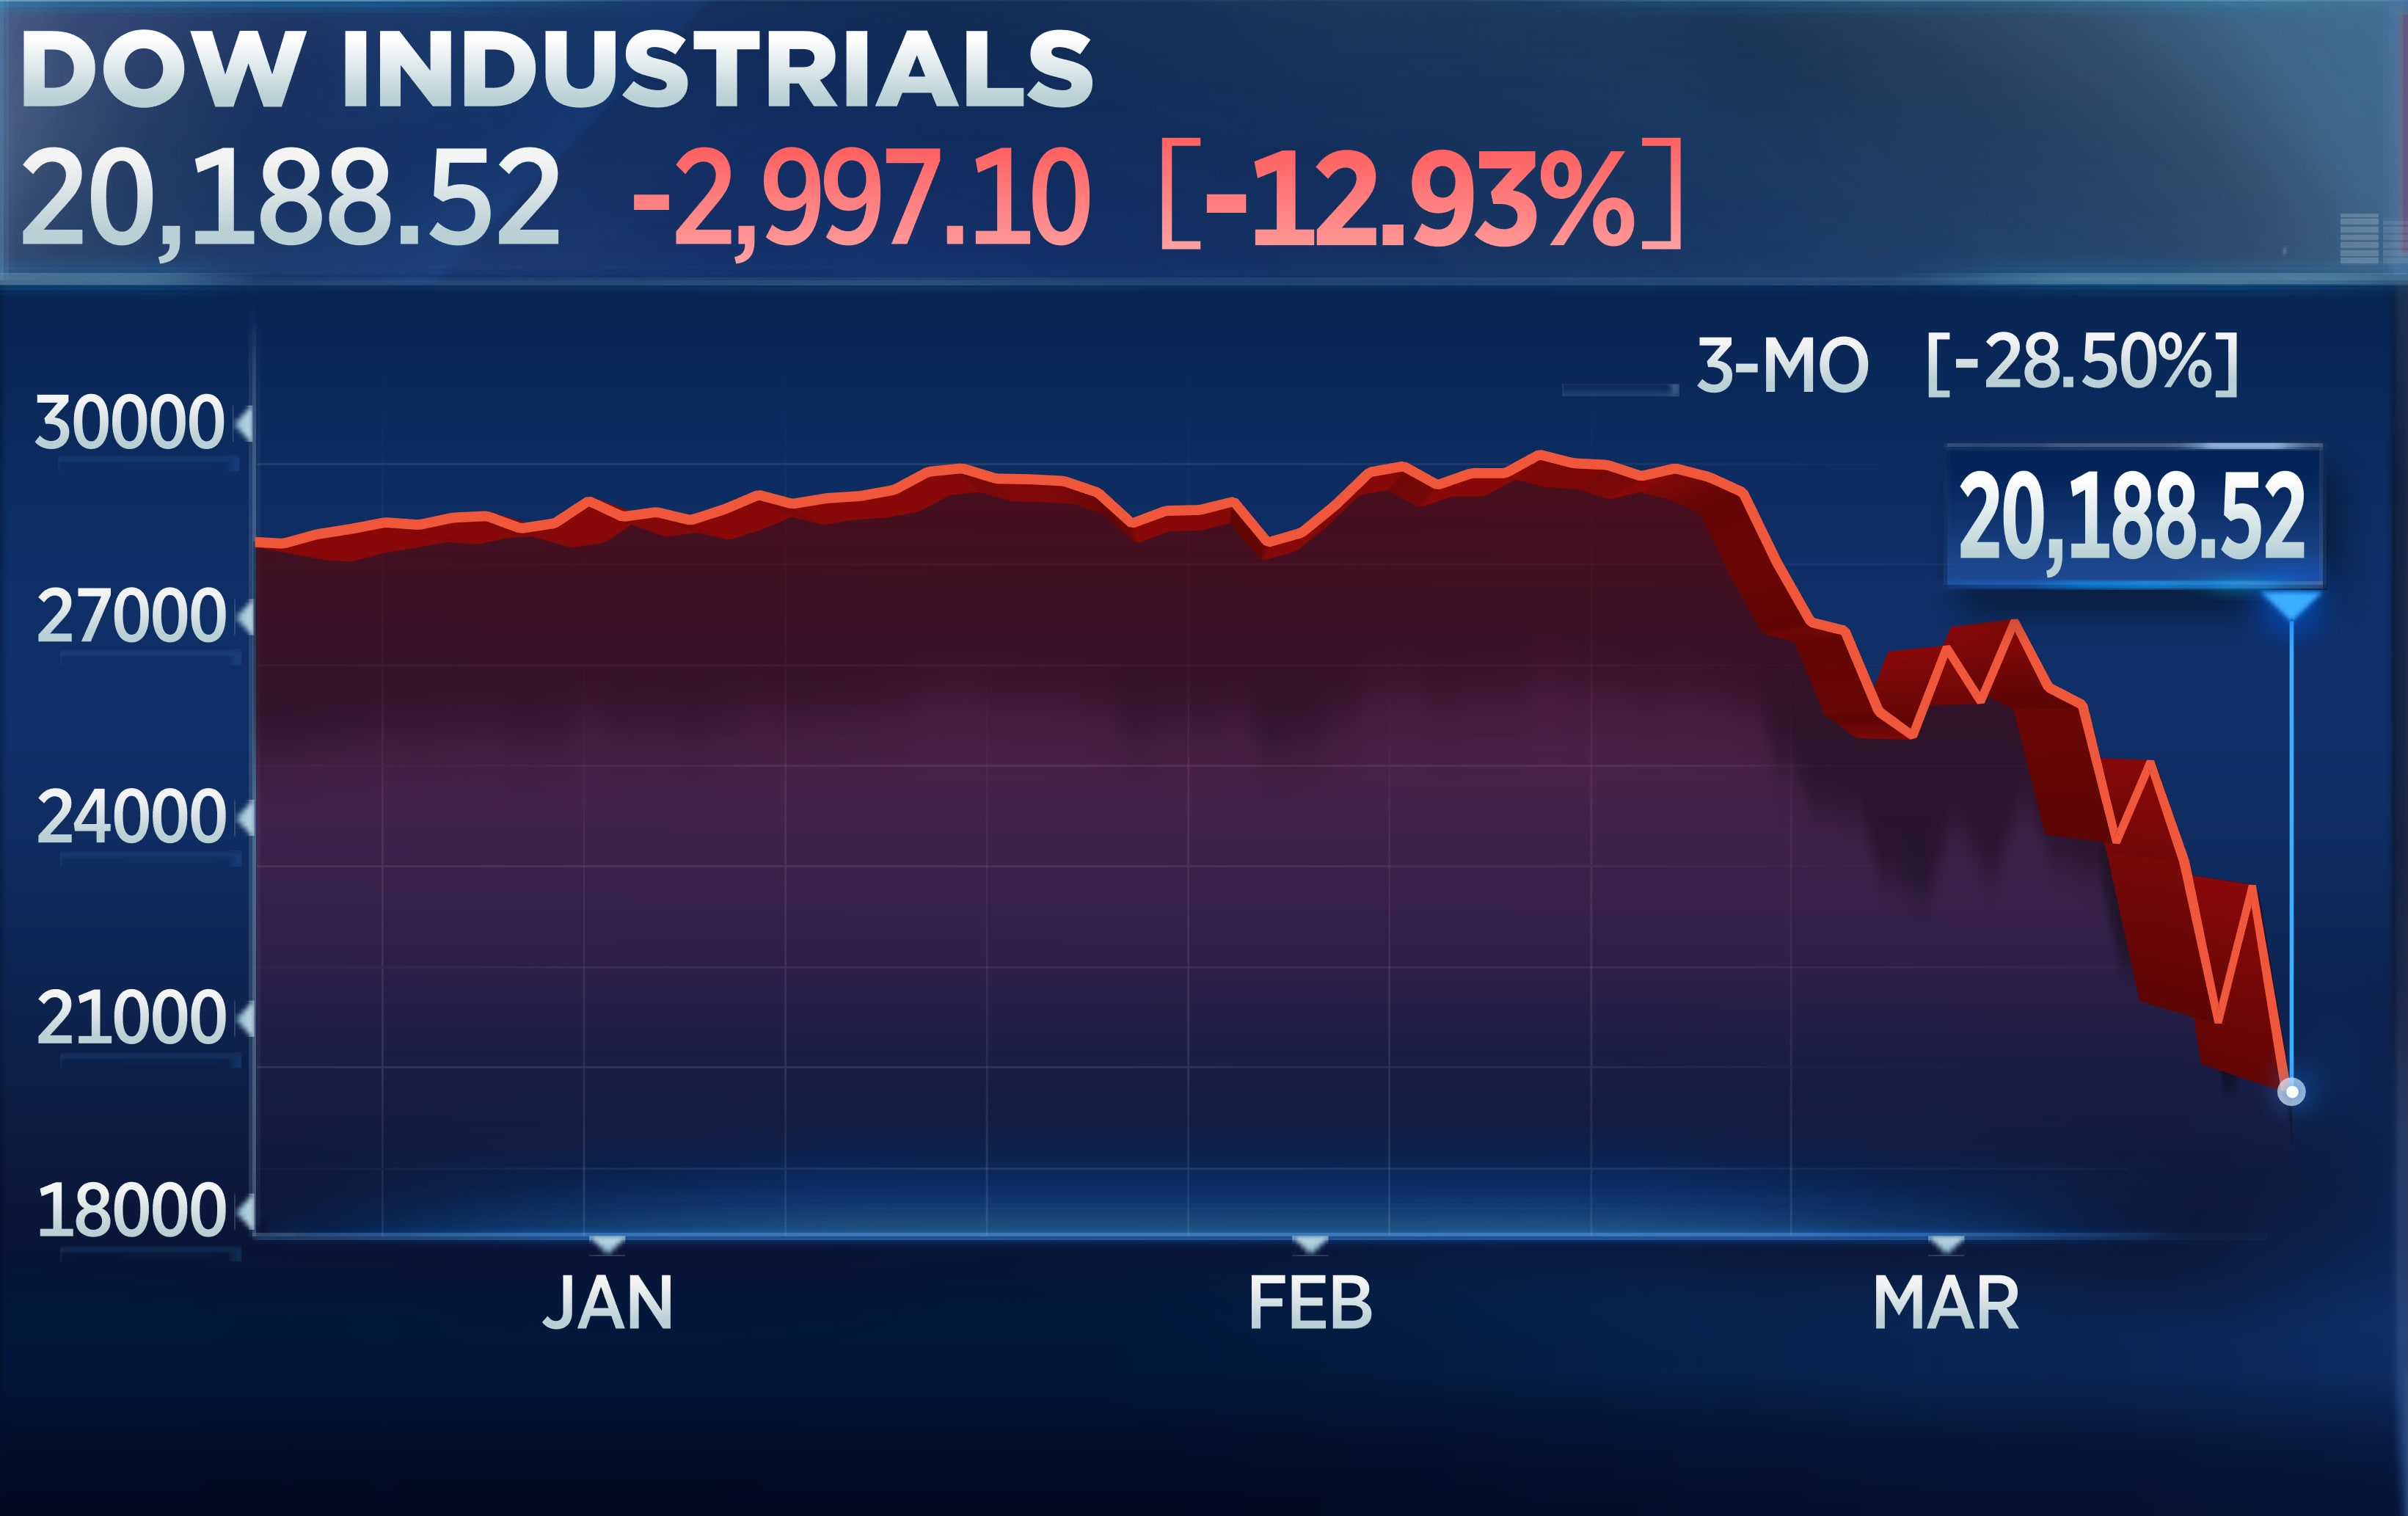 Dow Jones drops nearly 3,000 points